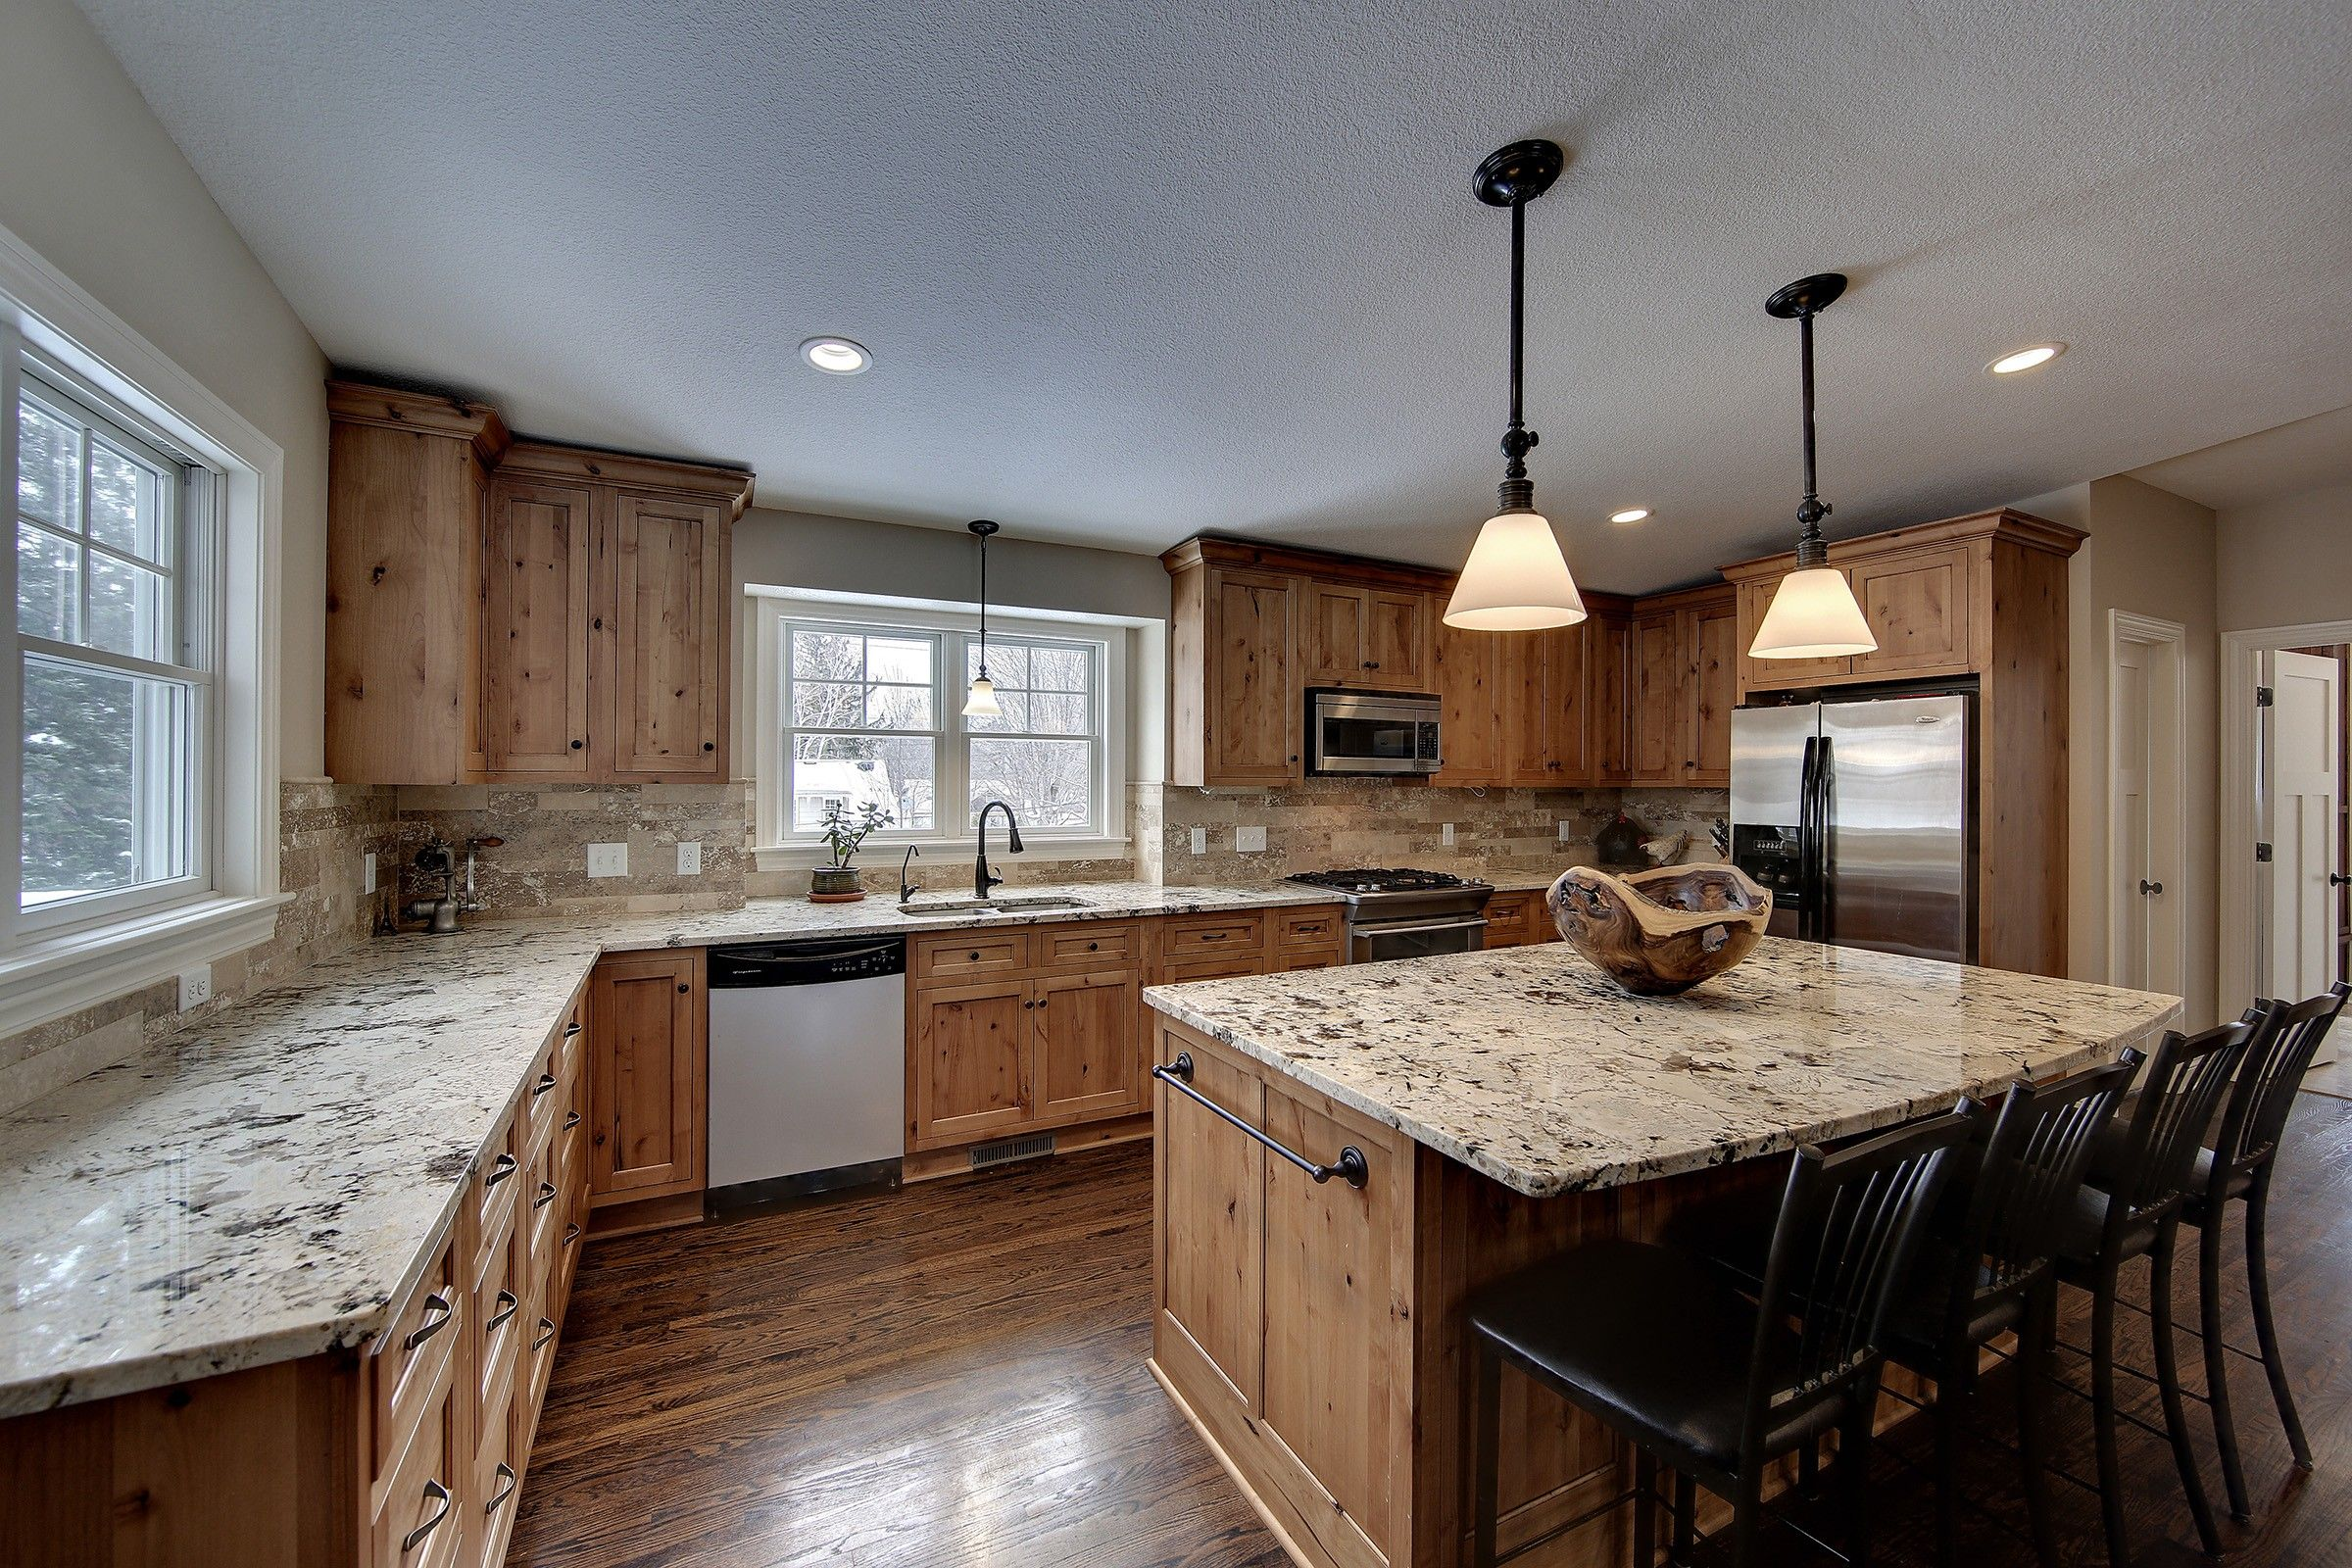 Alaska White granite counters, alder cabinets, drawers for ... on Pictures Of Granite Countertops With Maple Cabinets  id=45465